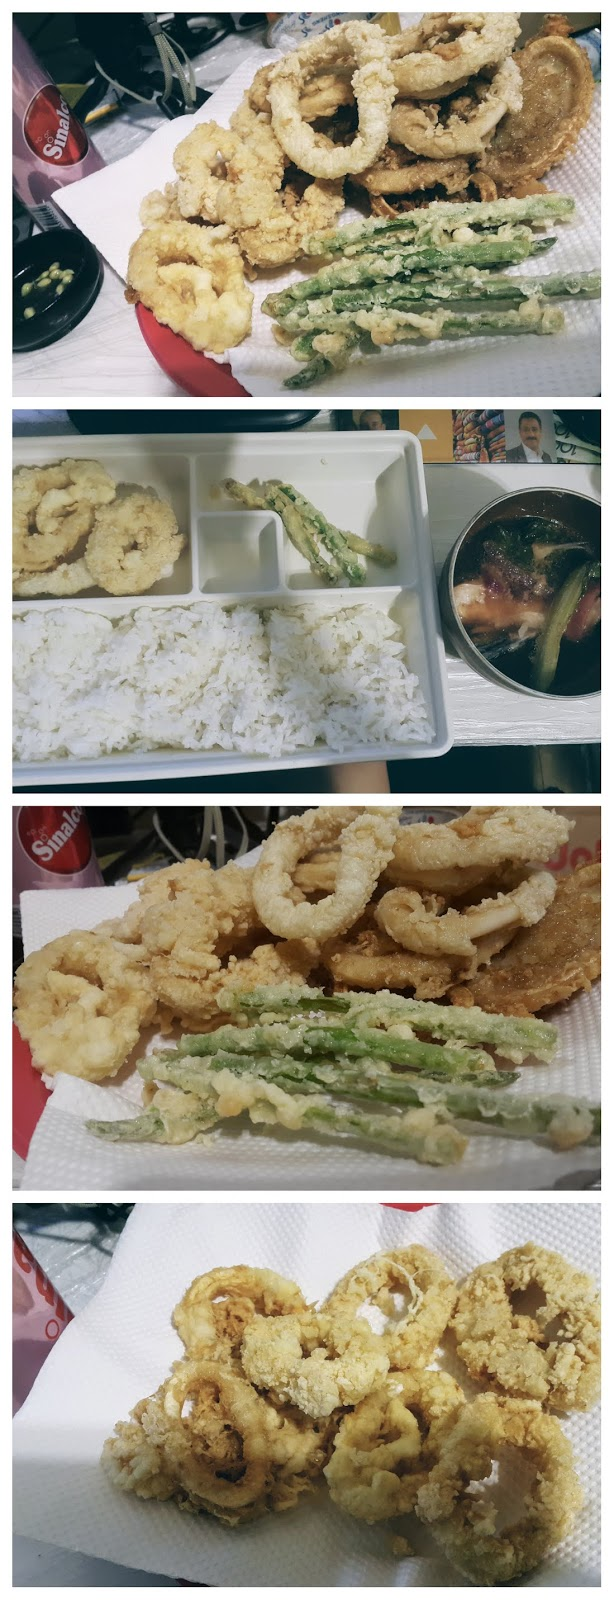 Sinigang na salmon soup (sour soup) with Calamares or Calamari and asparagus stirfry with rice and sinalco can drink